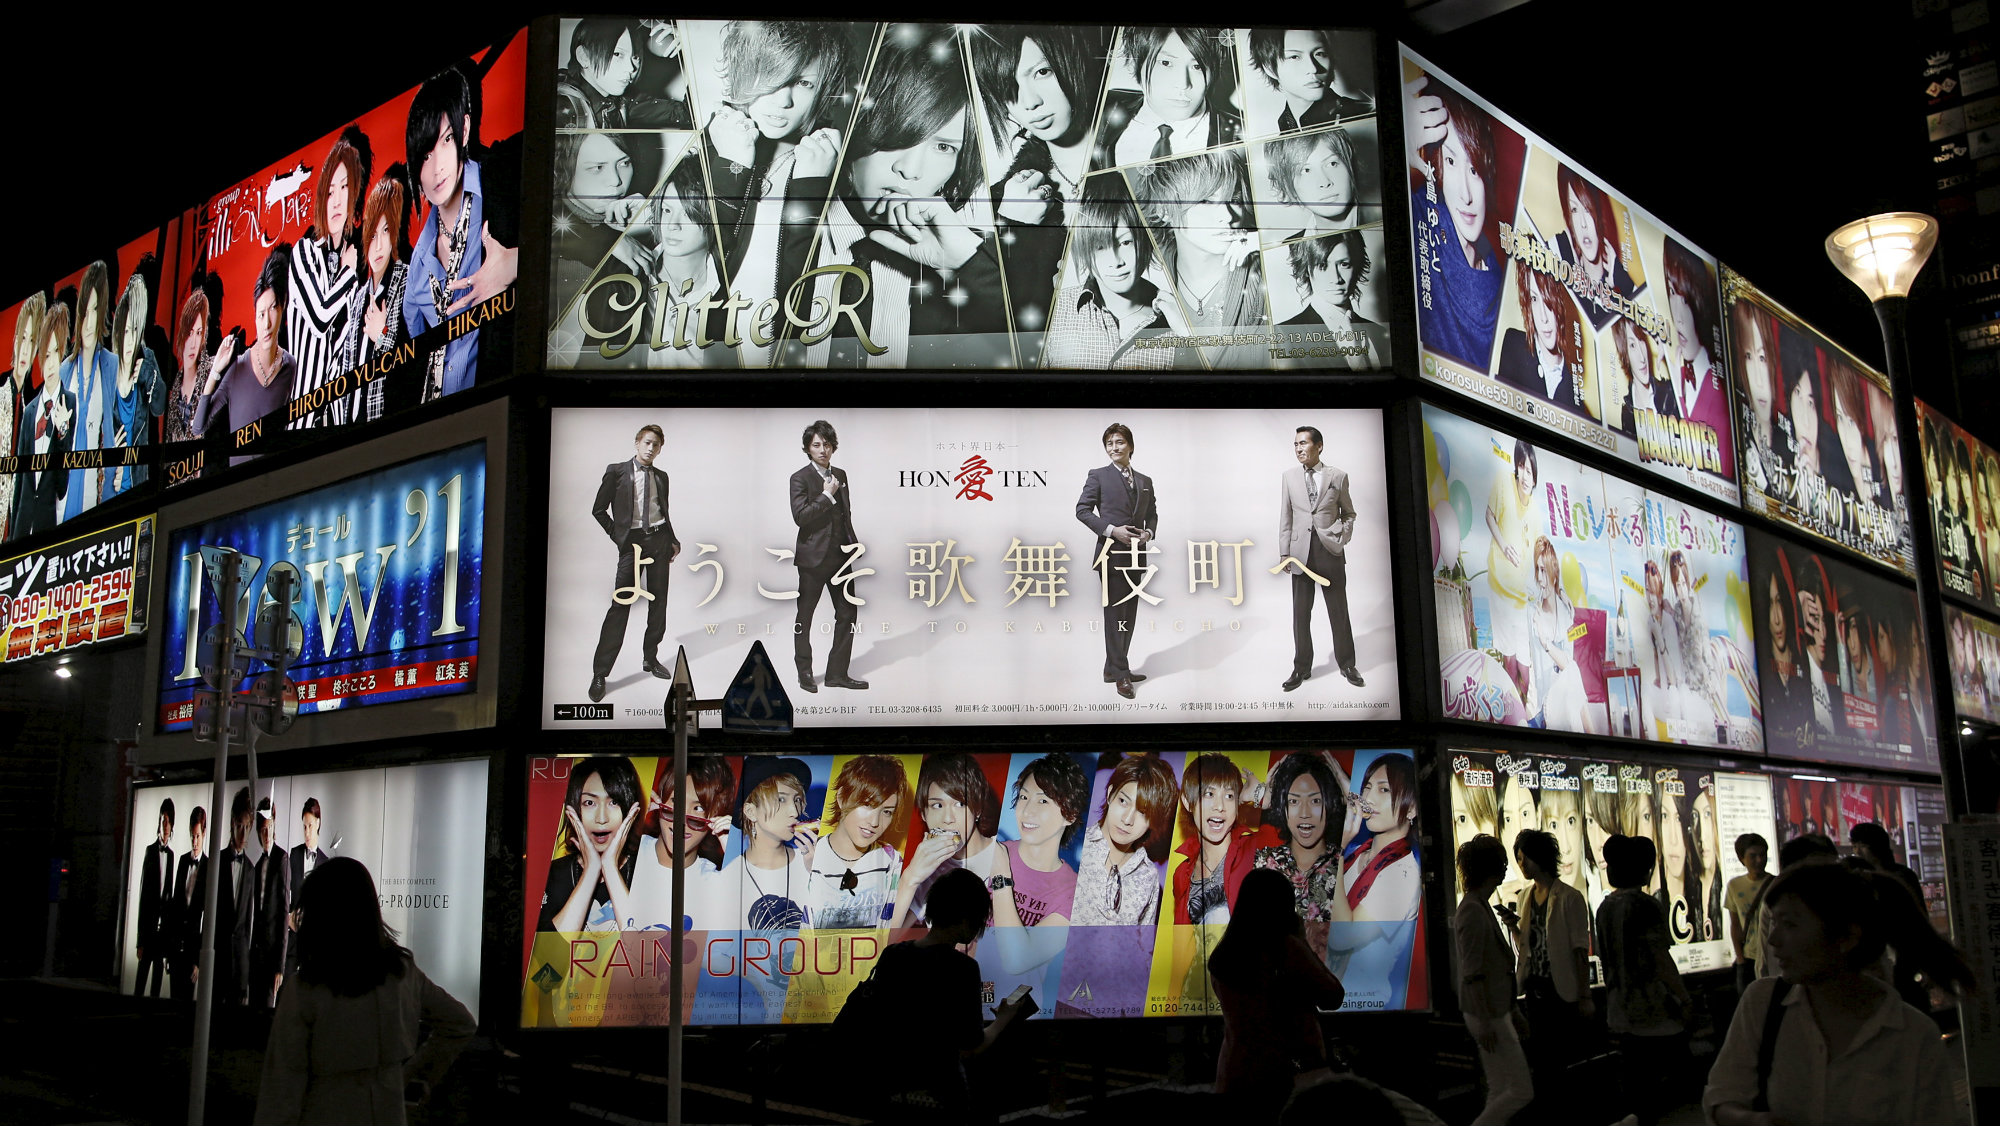 """Passersby are silhouetted in front of an illuminated advertising board of a gigolo club called """"host club"""" in Kabukicho, Tokyo's biggest amusement district, June 12, 2015."""